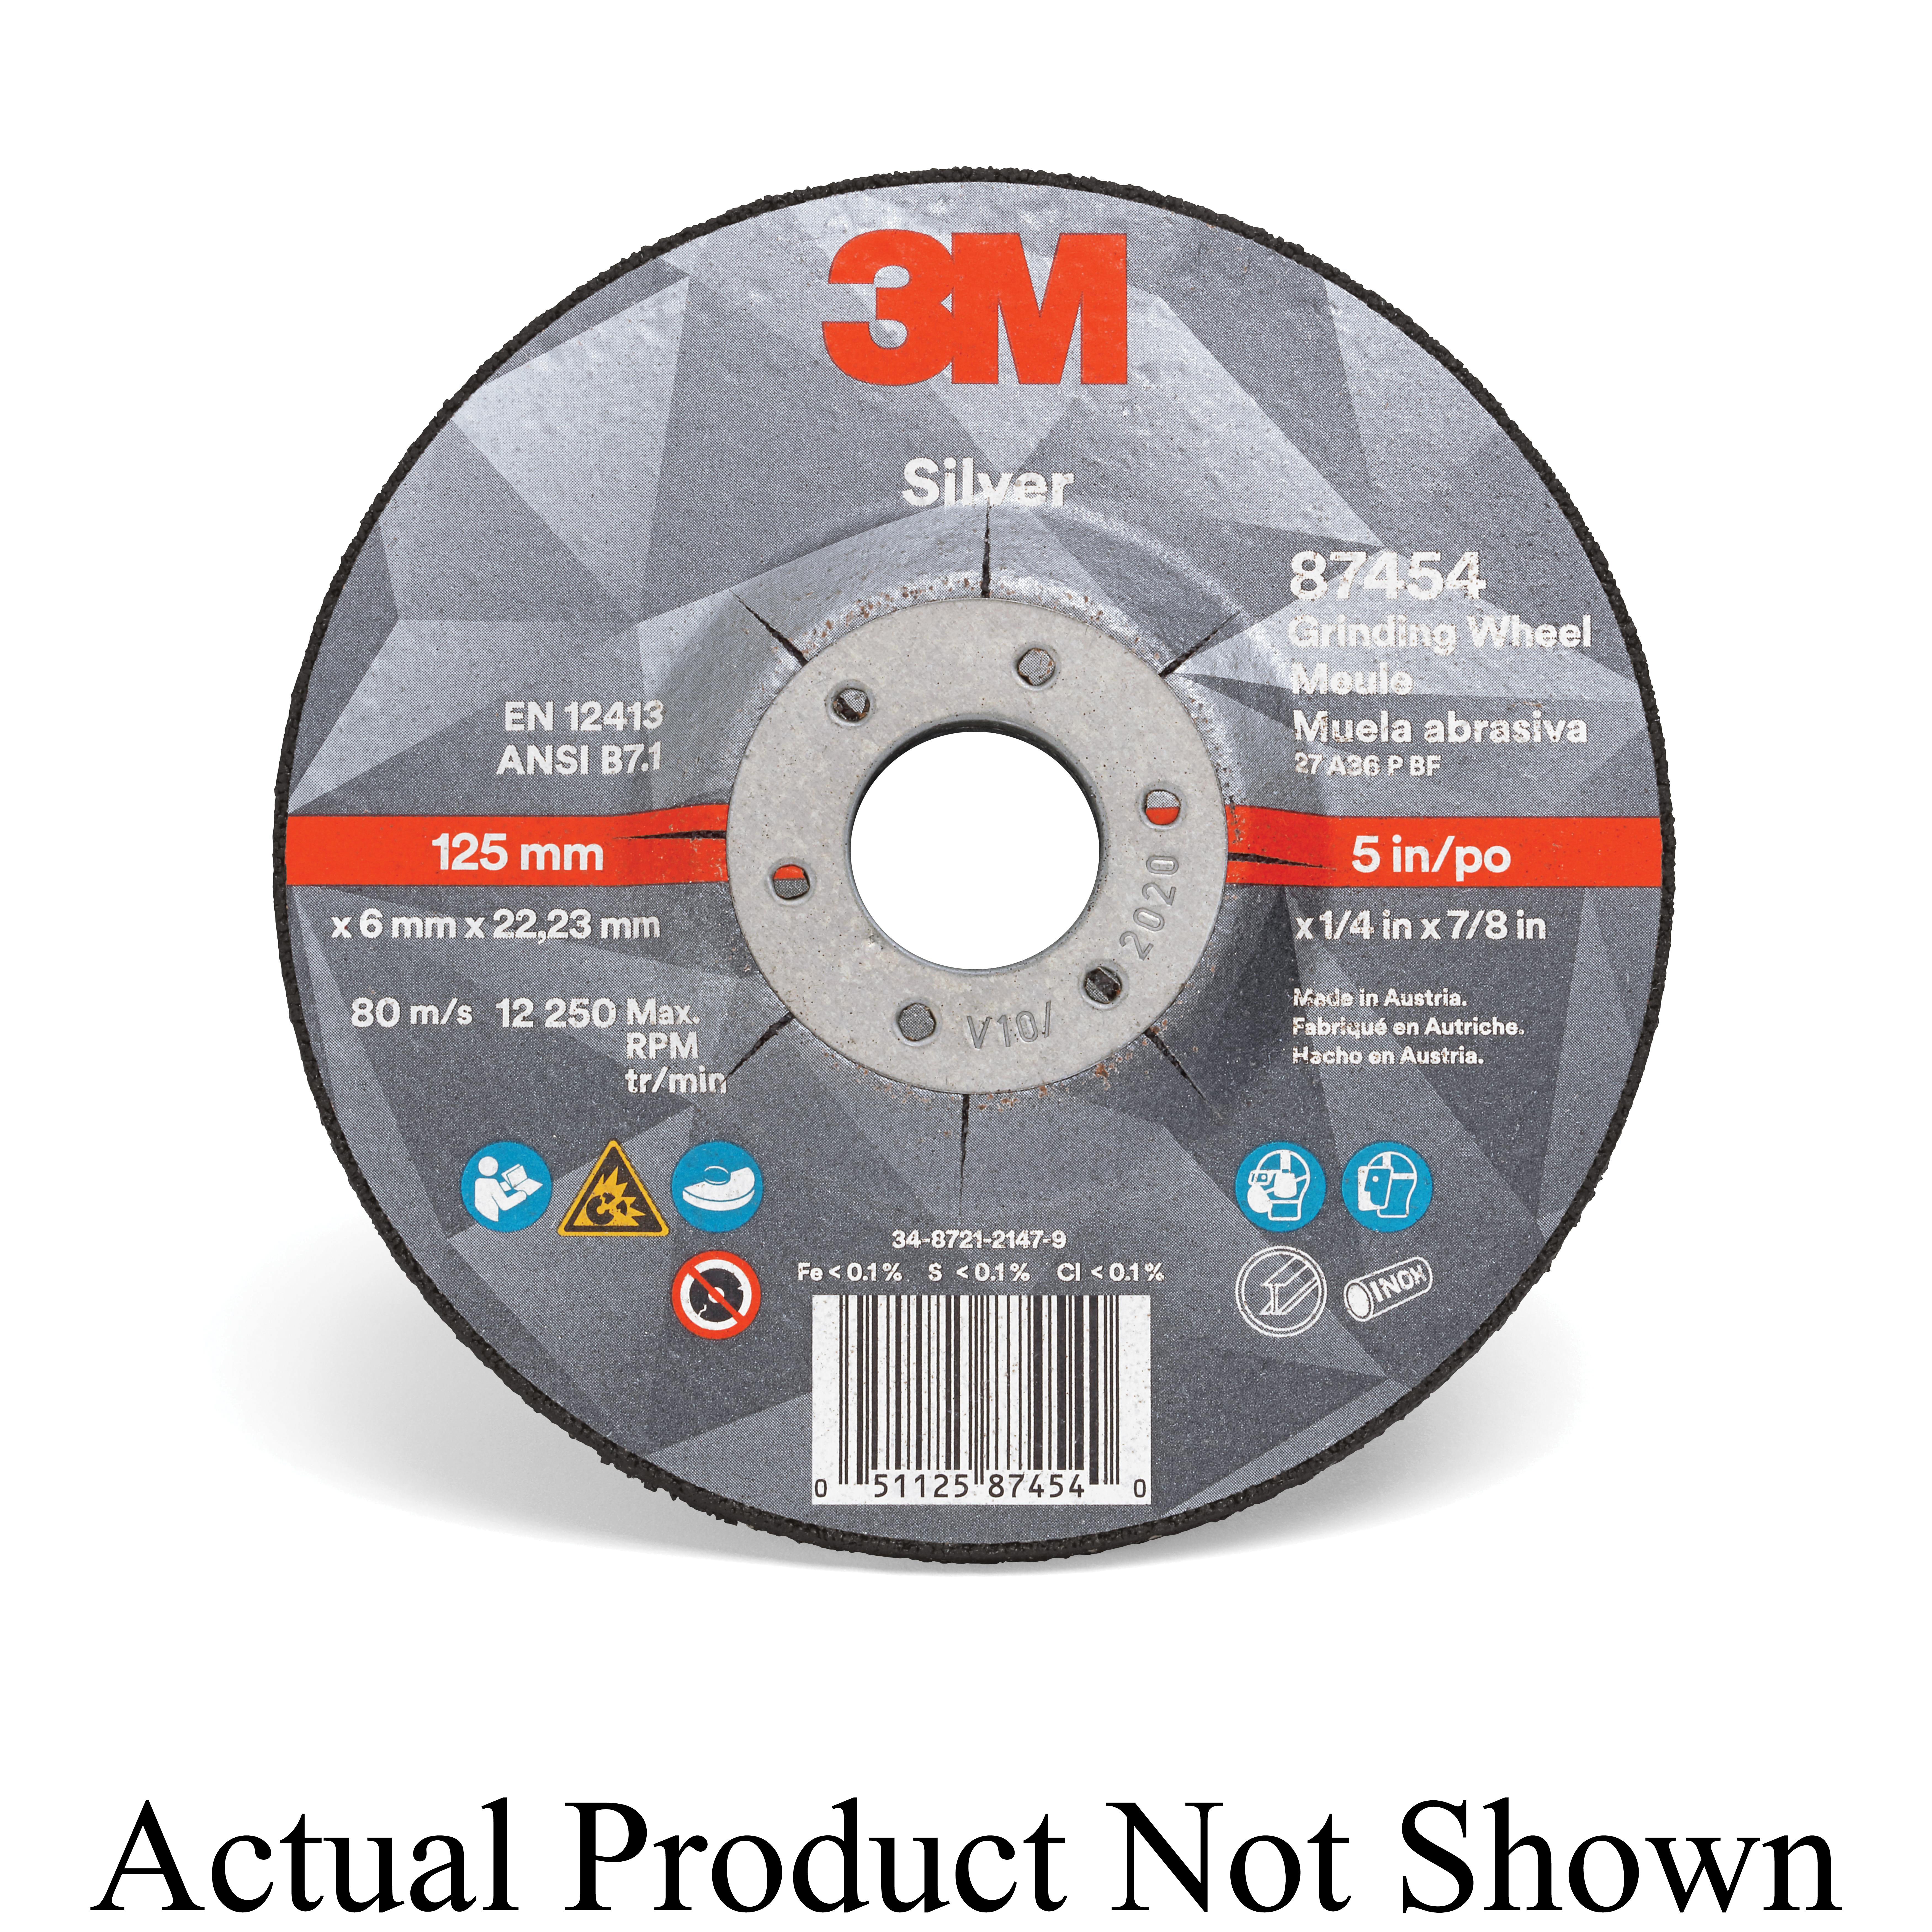 3M™ Silver 051125-87456 Silver Type 27 Depressed Center Grinding Wheel, 4 in Dia x 1/4 in THK, 5/8 in Center Hole, 36 Grit, Ceramic Grain Abrasive